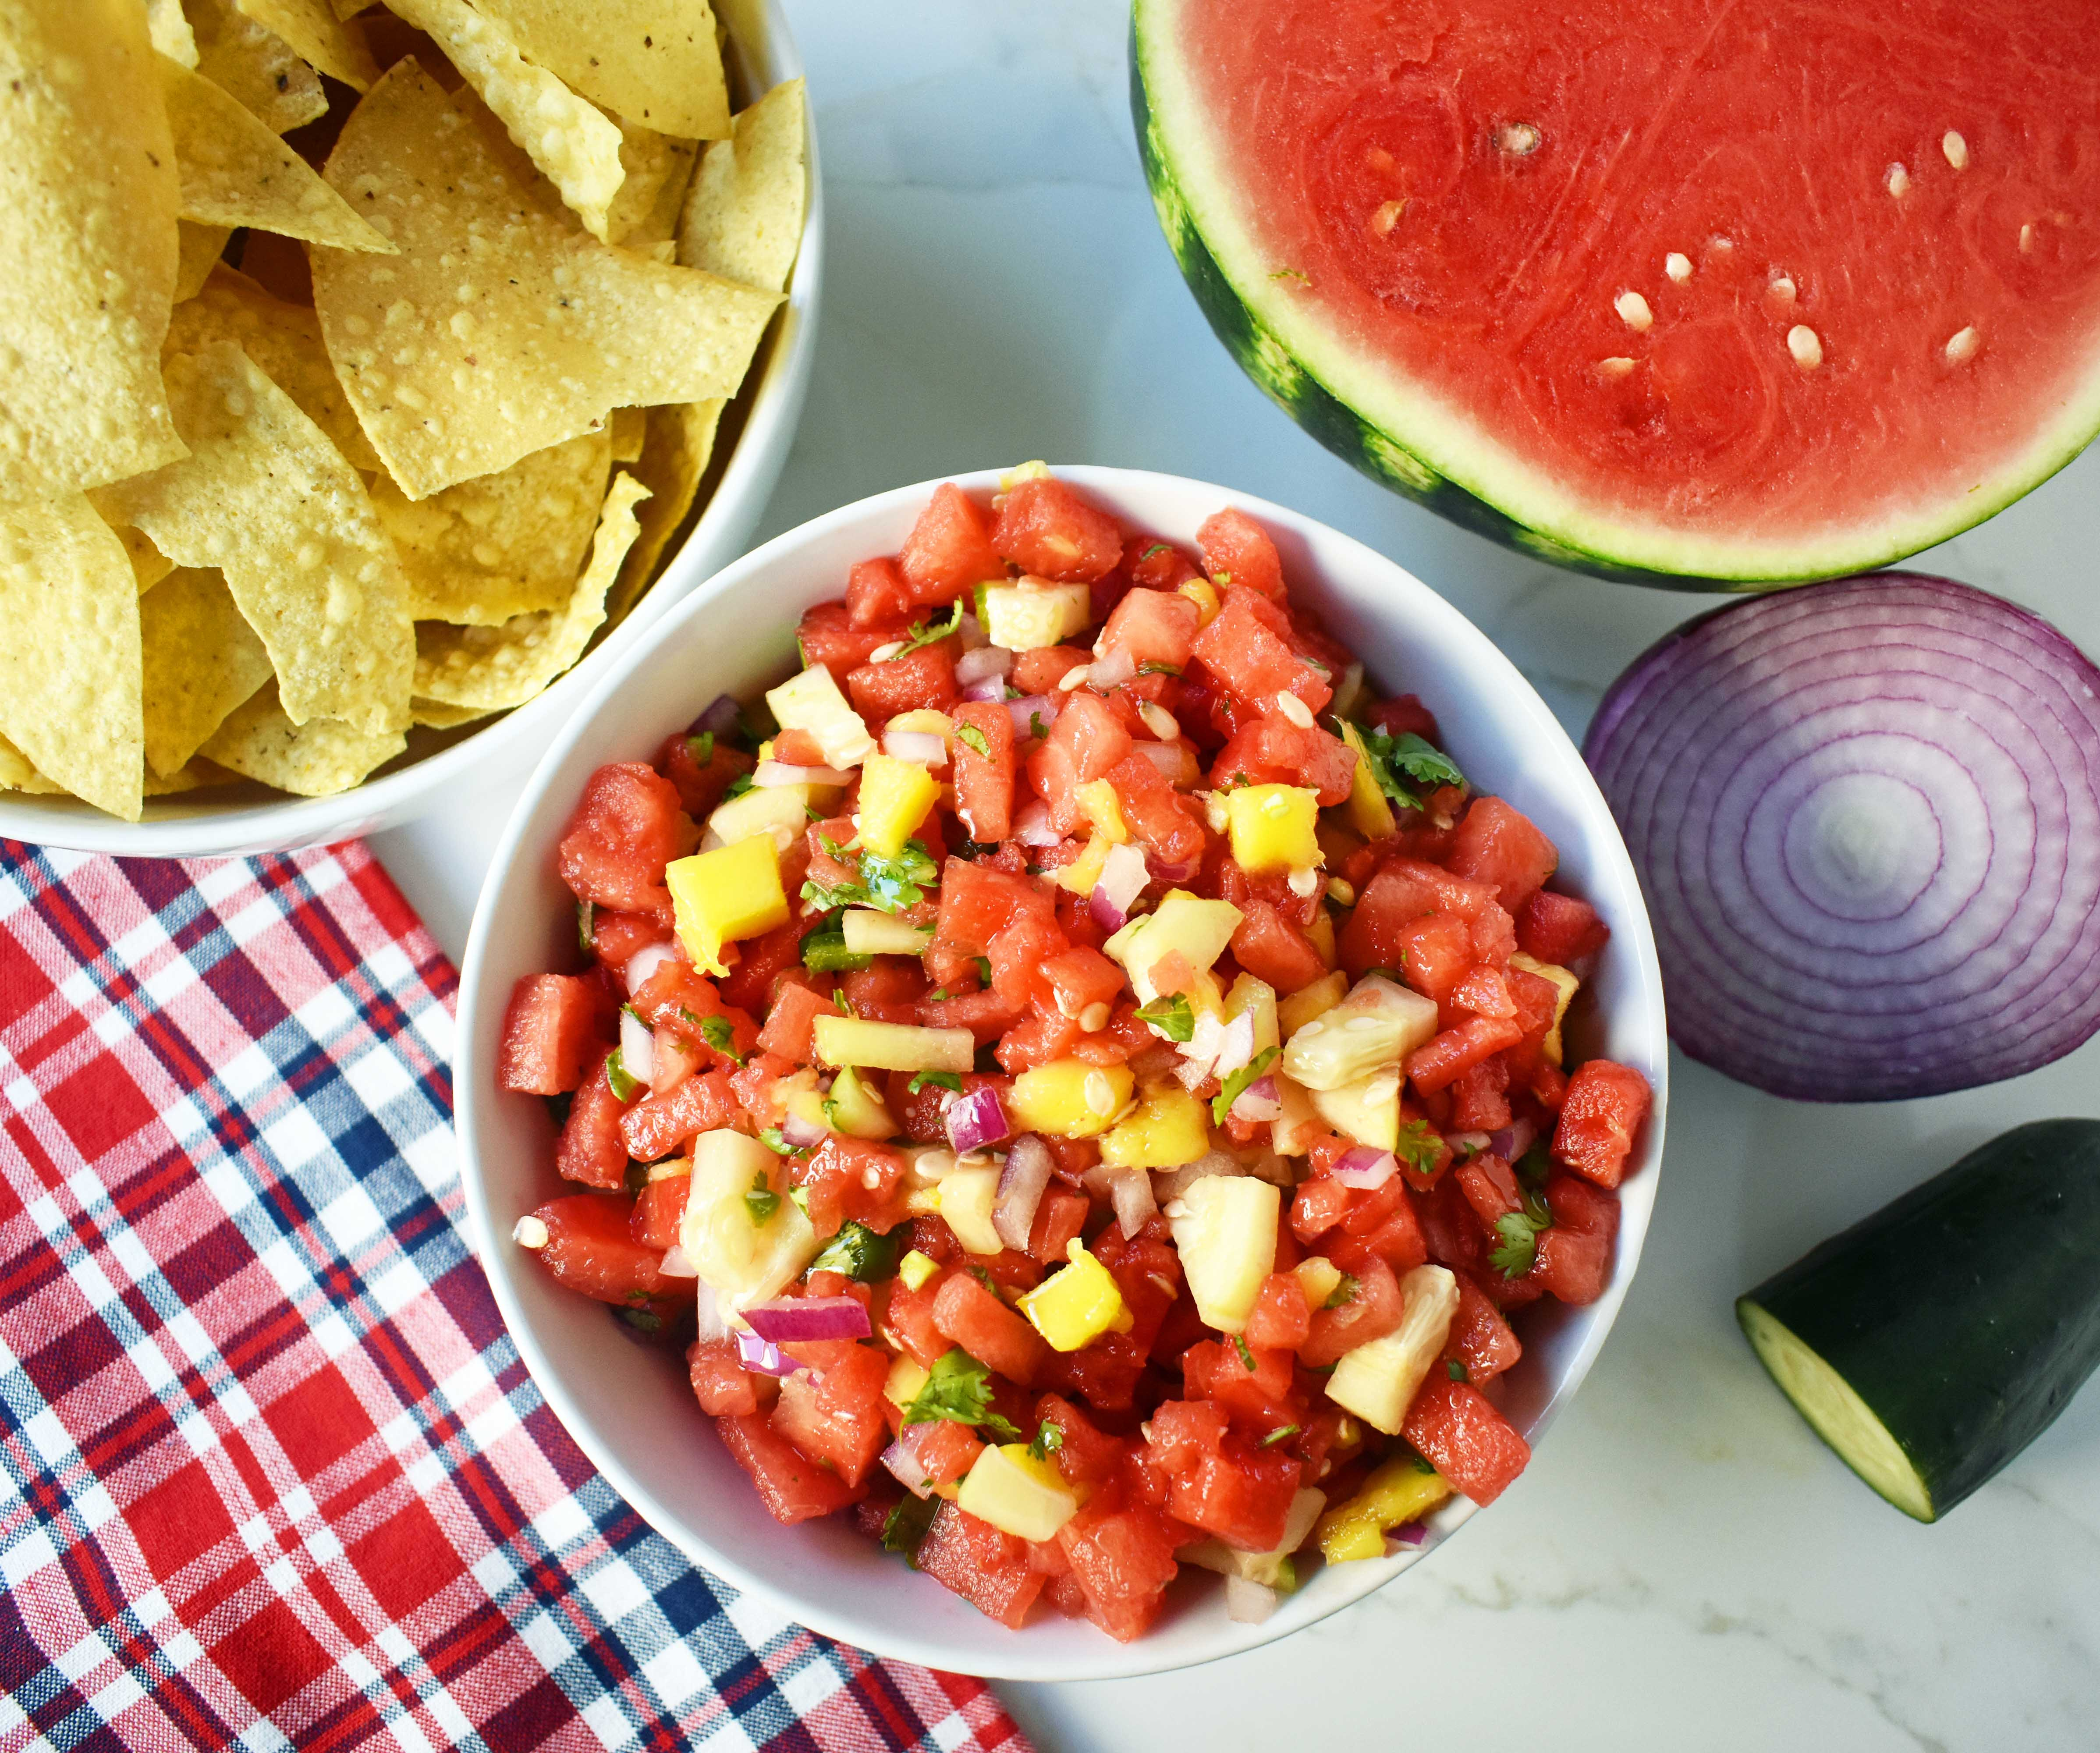 Watermelon Mango Salsa made with fresh watermelon, sweet mango, crisp cucumber, red onion, cilantro, jalapeno and a touch of honey. A sweet and spicy summer salsa. www.modernhoney.com